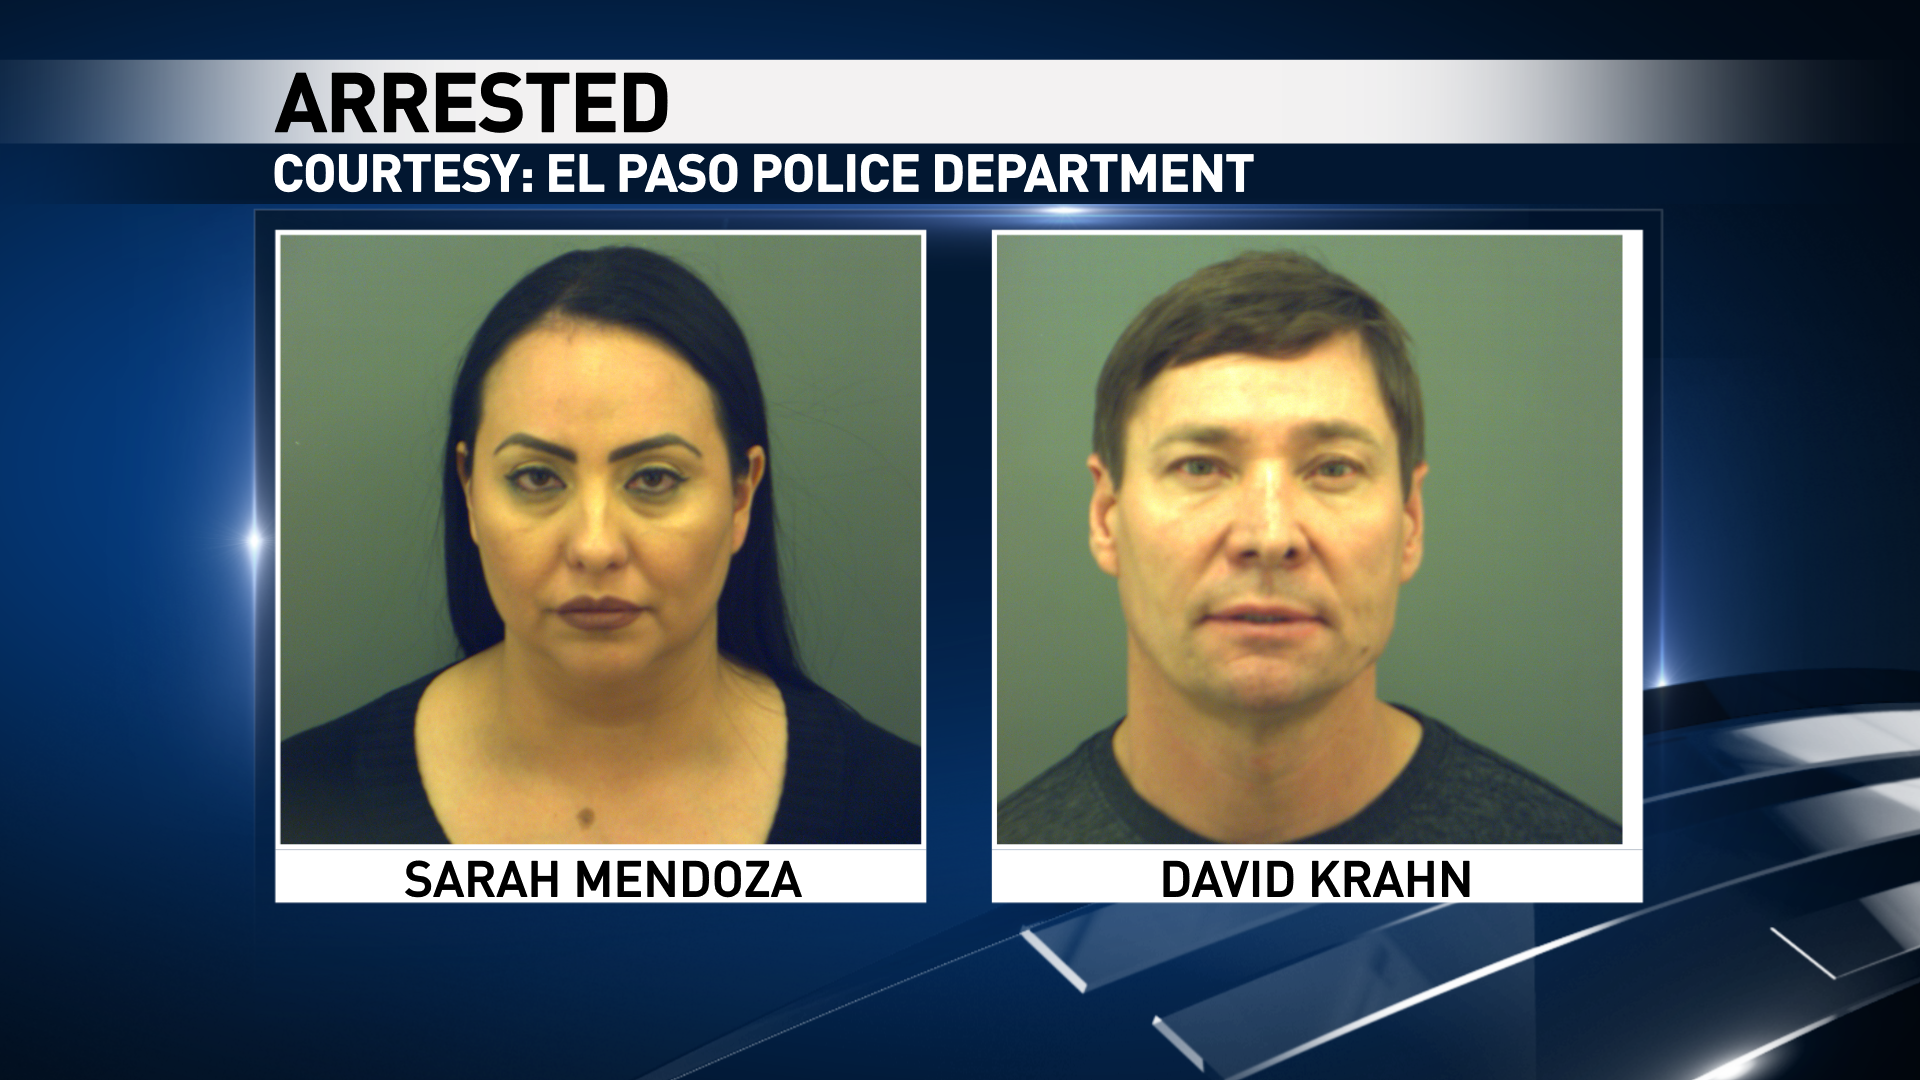 Sarah Mendoza and David Krahn were arrested for possession of cocaine.